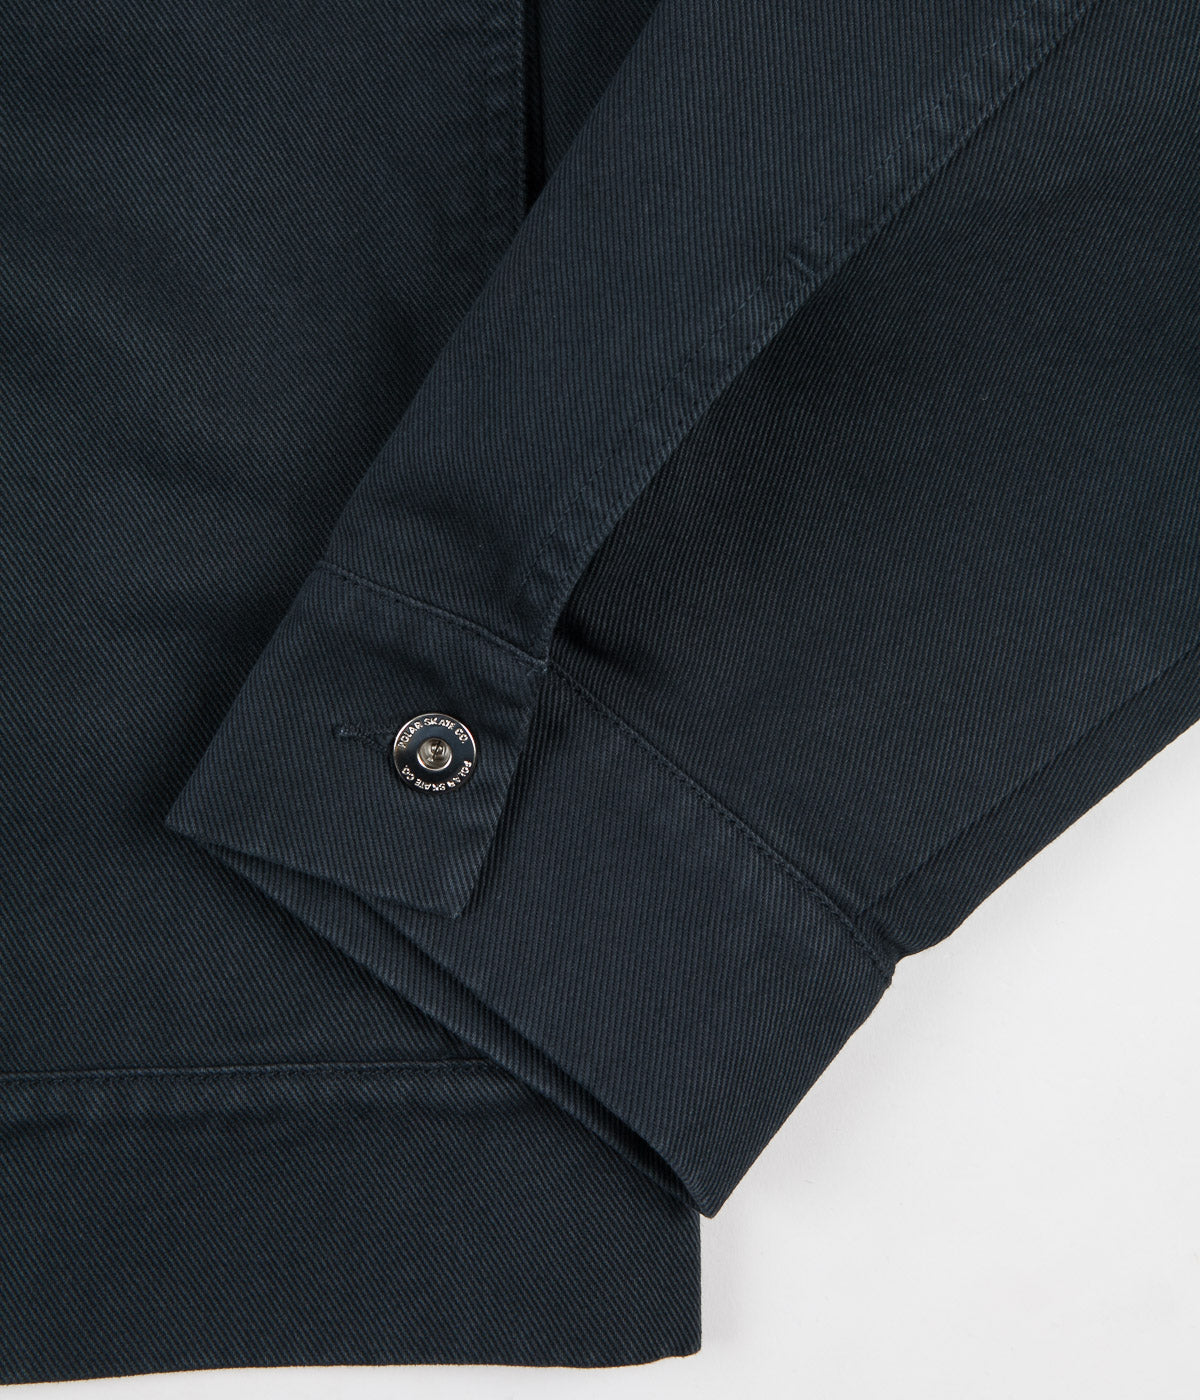 Polar Twill Jacket - Grey Teal